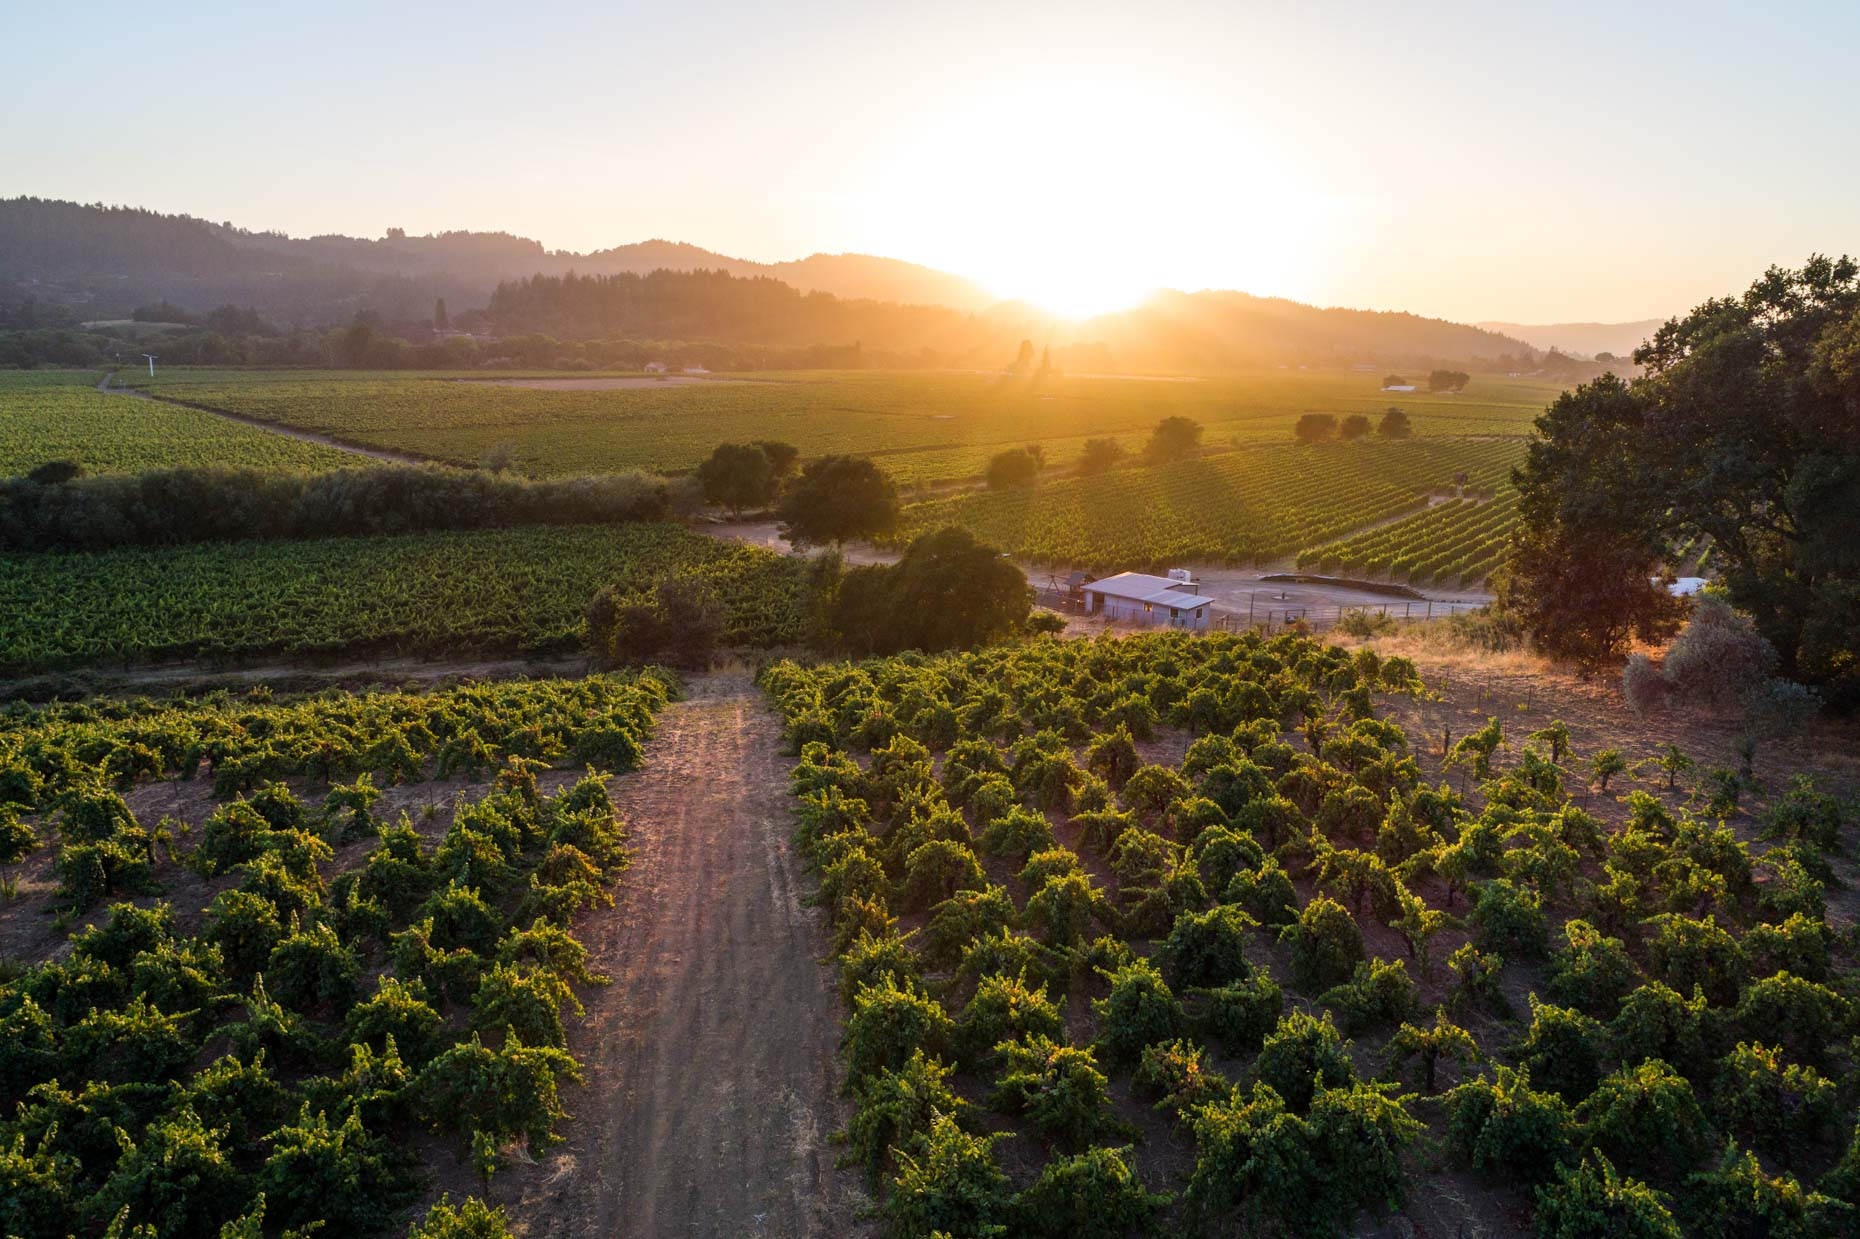 Drone - Dry Creek Valley Wine Country Sunset, Healdsburg, California